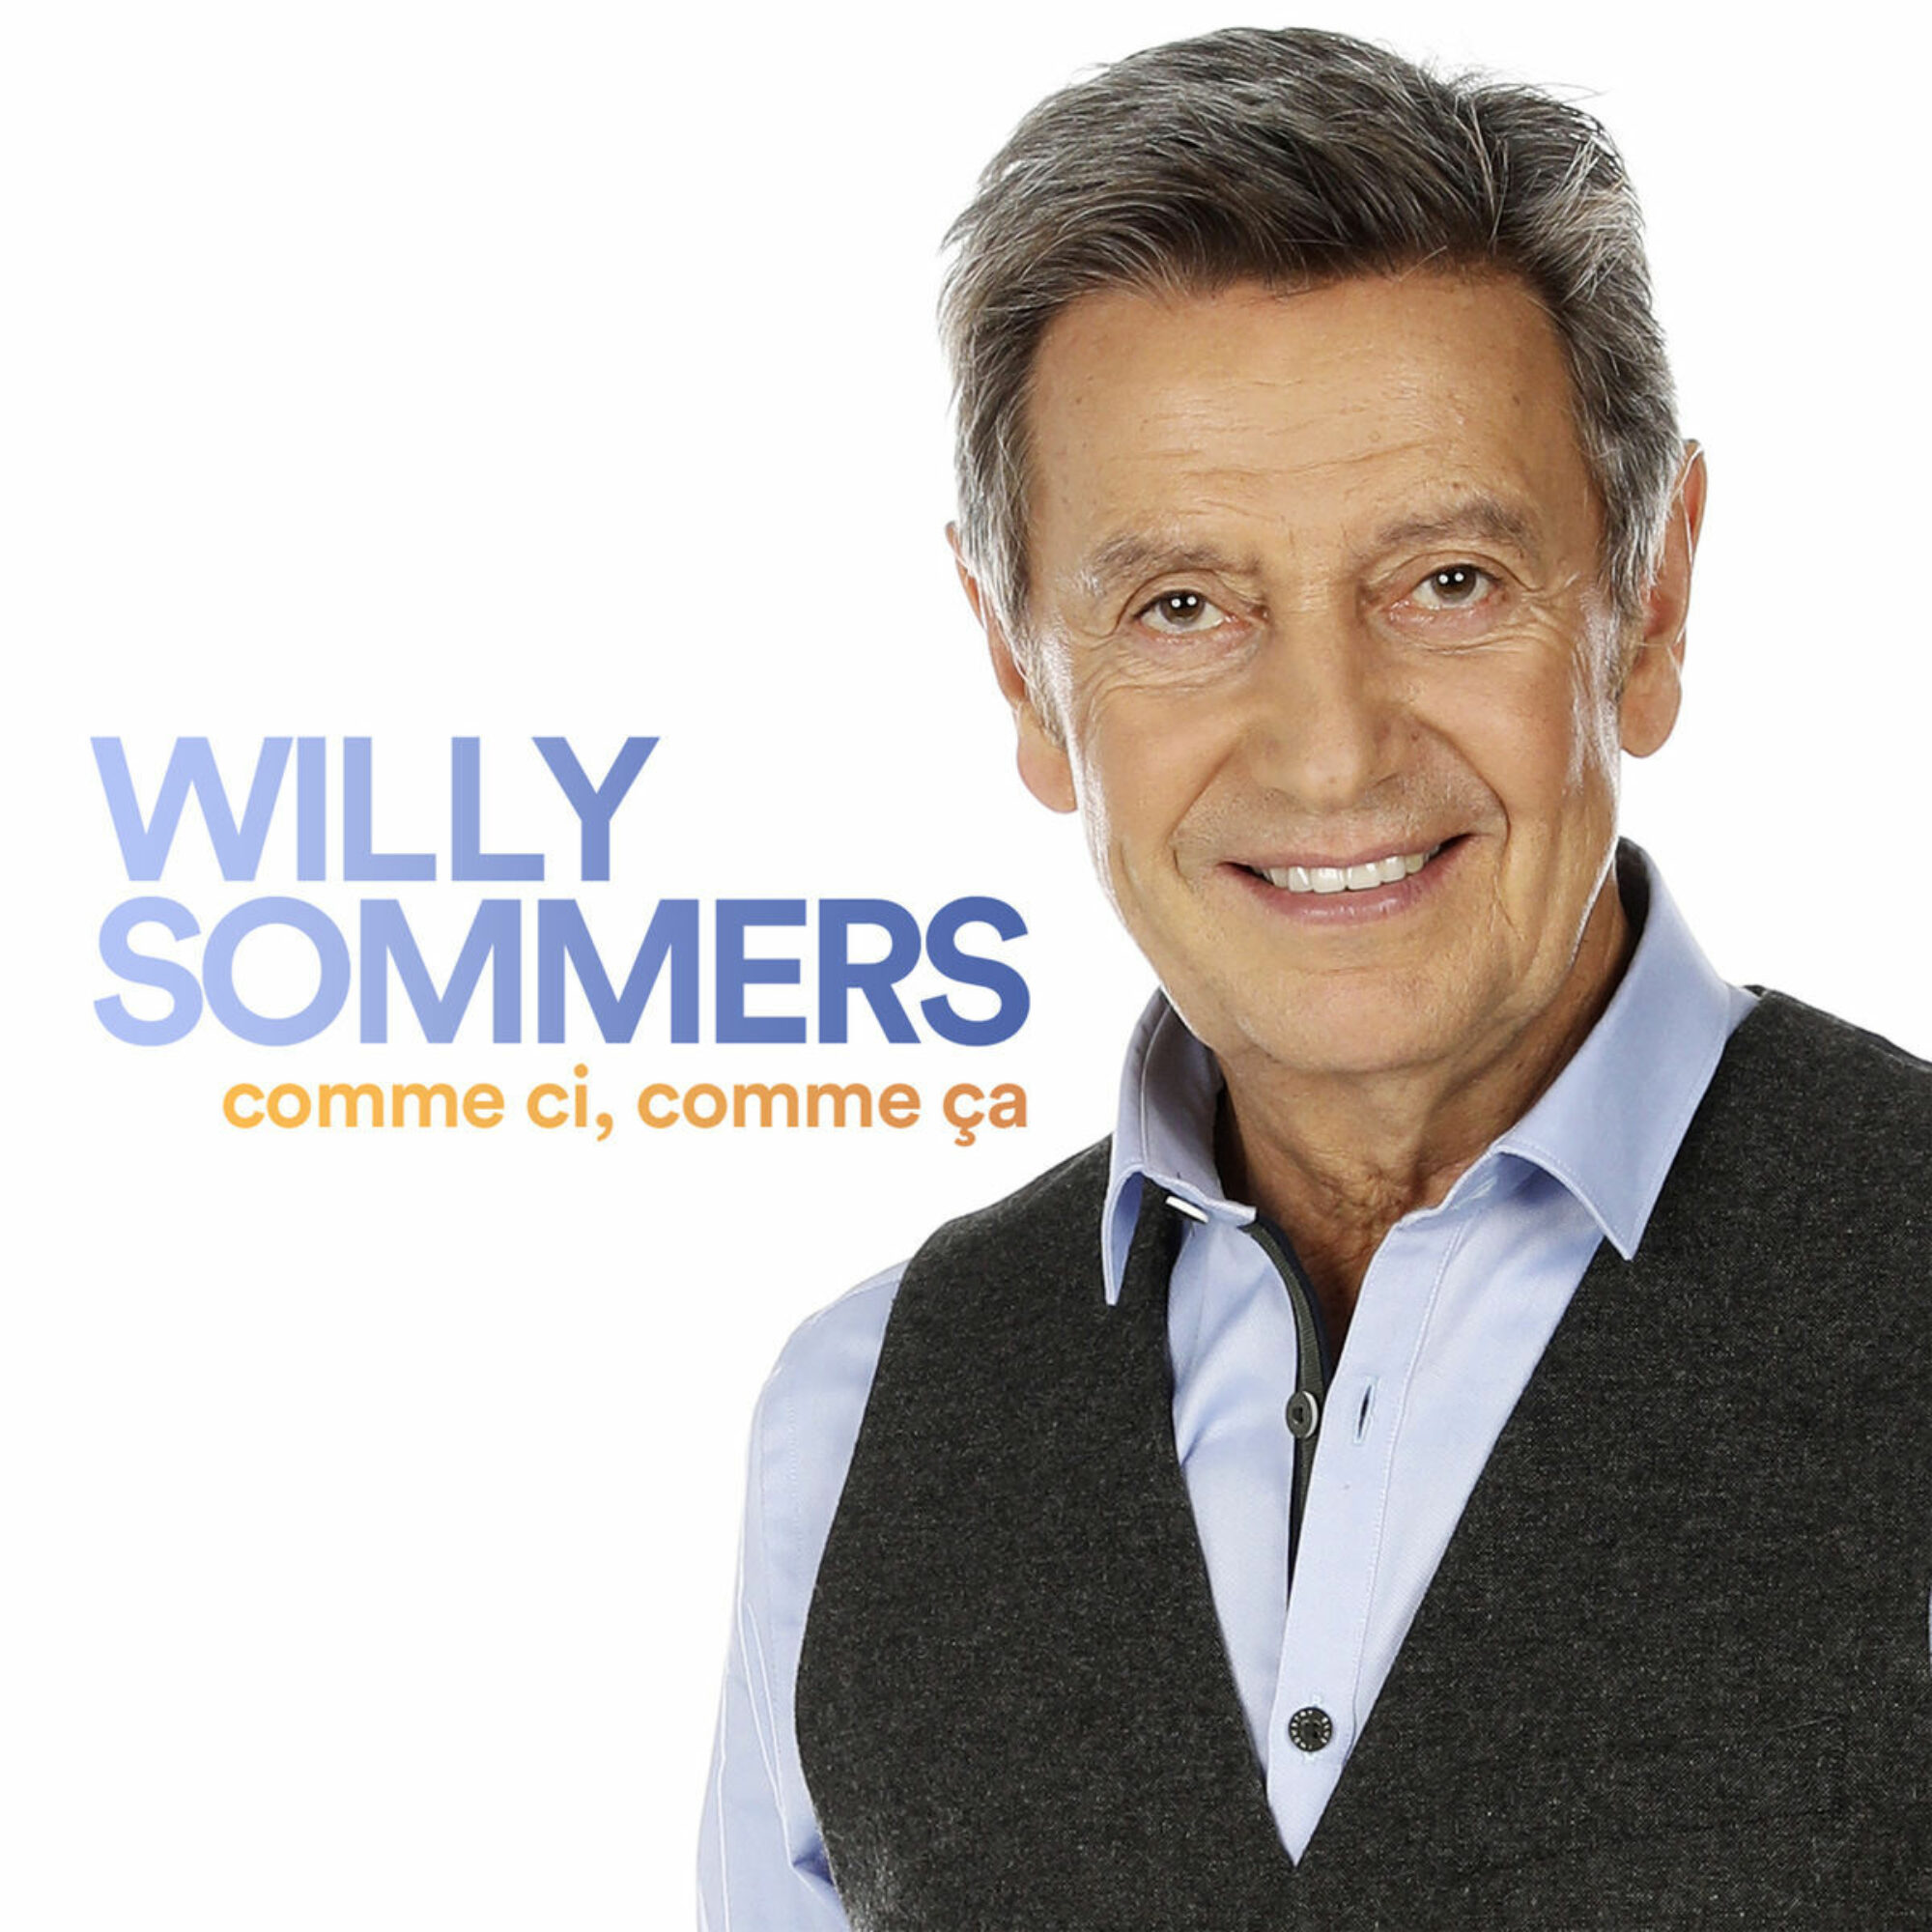 Willy Sommers Comme Ci Comme Ca S